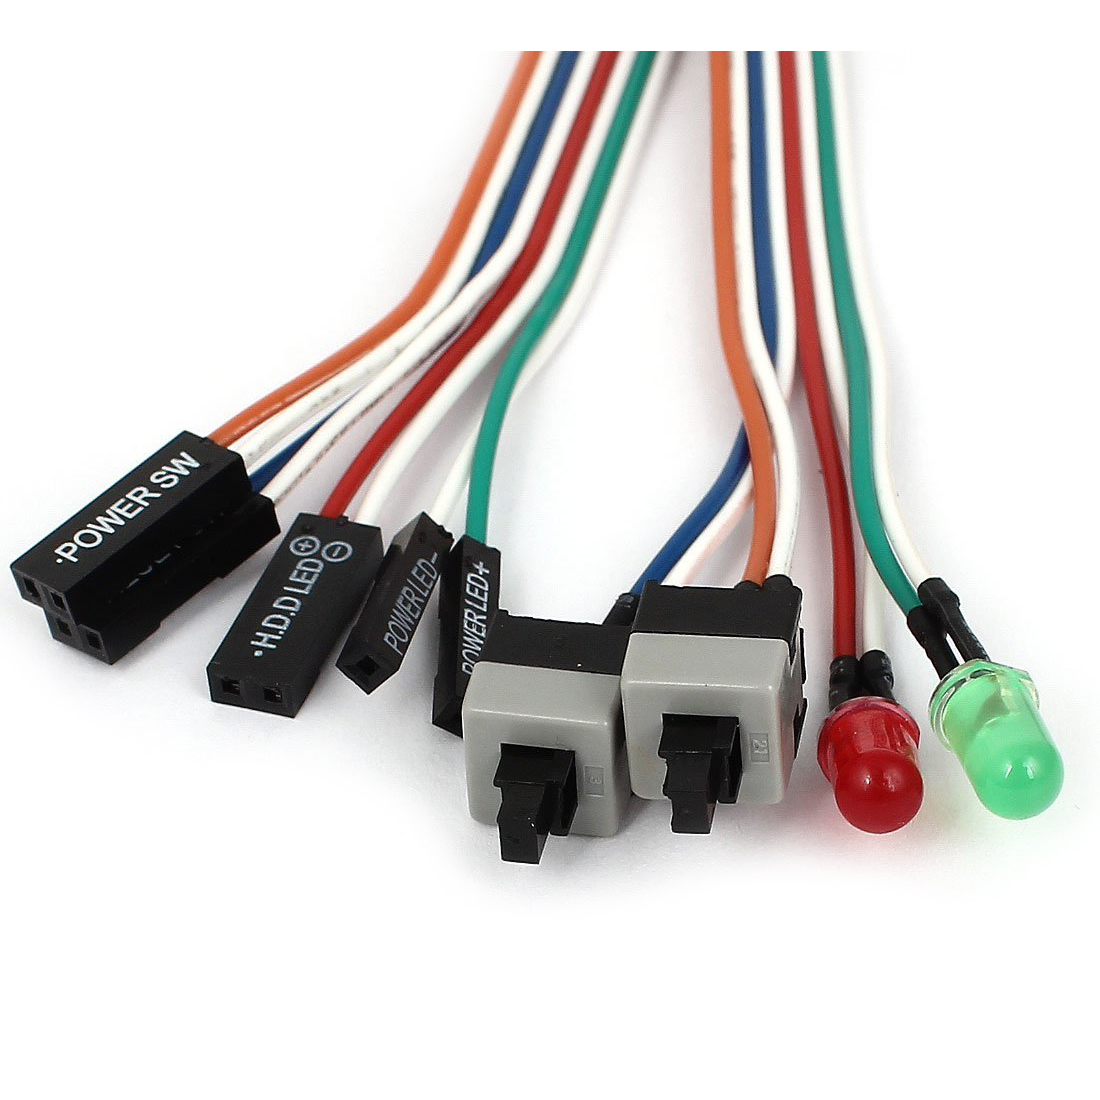 JFBL Hot PC Case Red Green LED Lamp ATX Power Supply Reset HDD Switch Lead 20